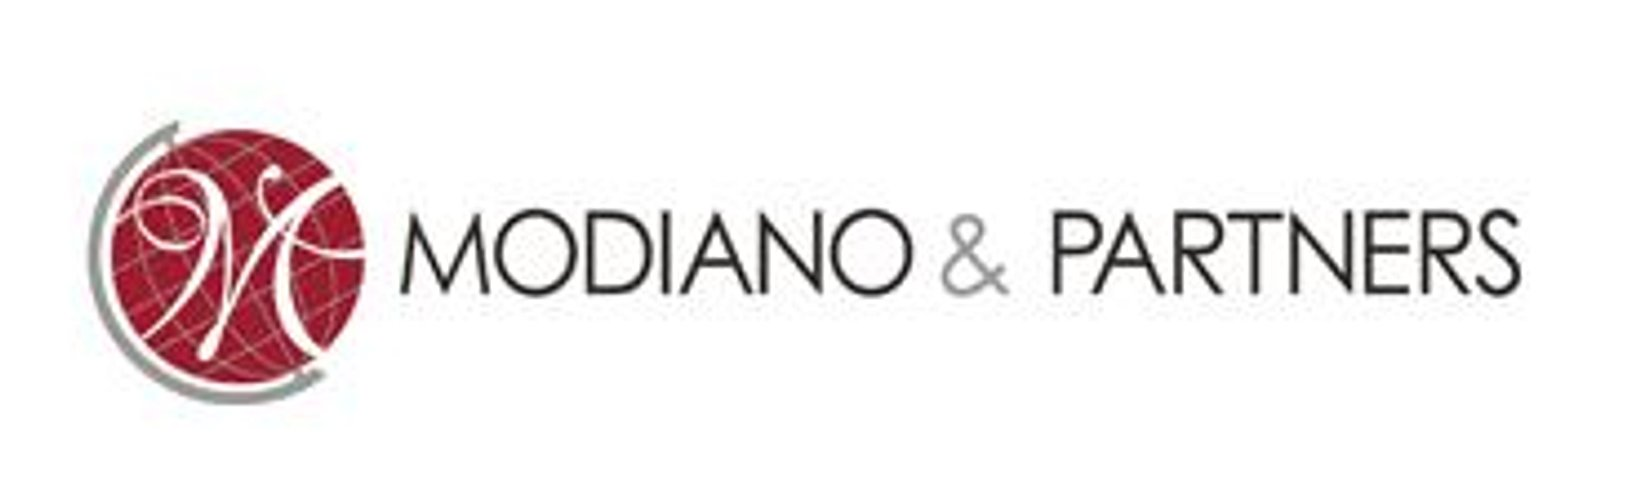 Modiano & Partners SA